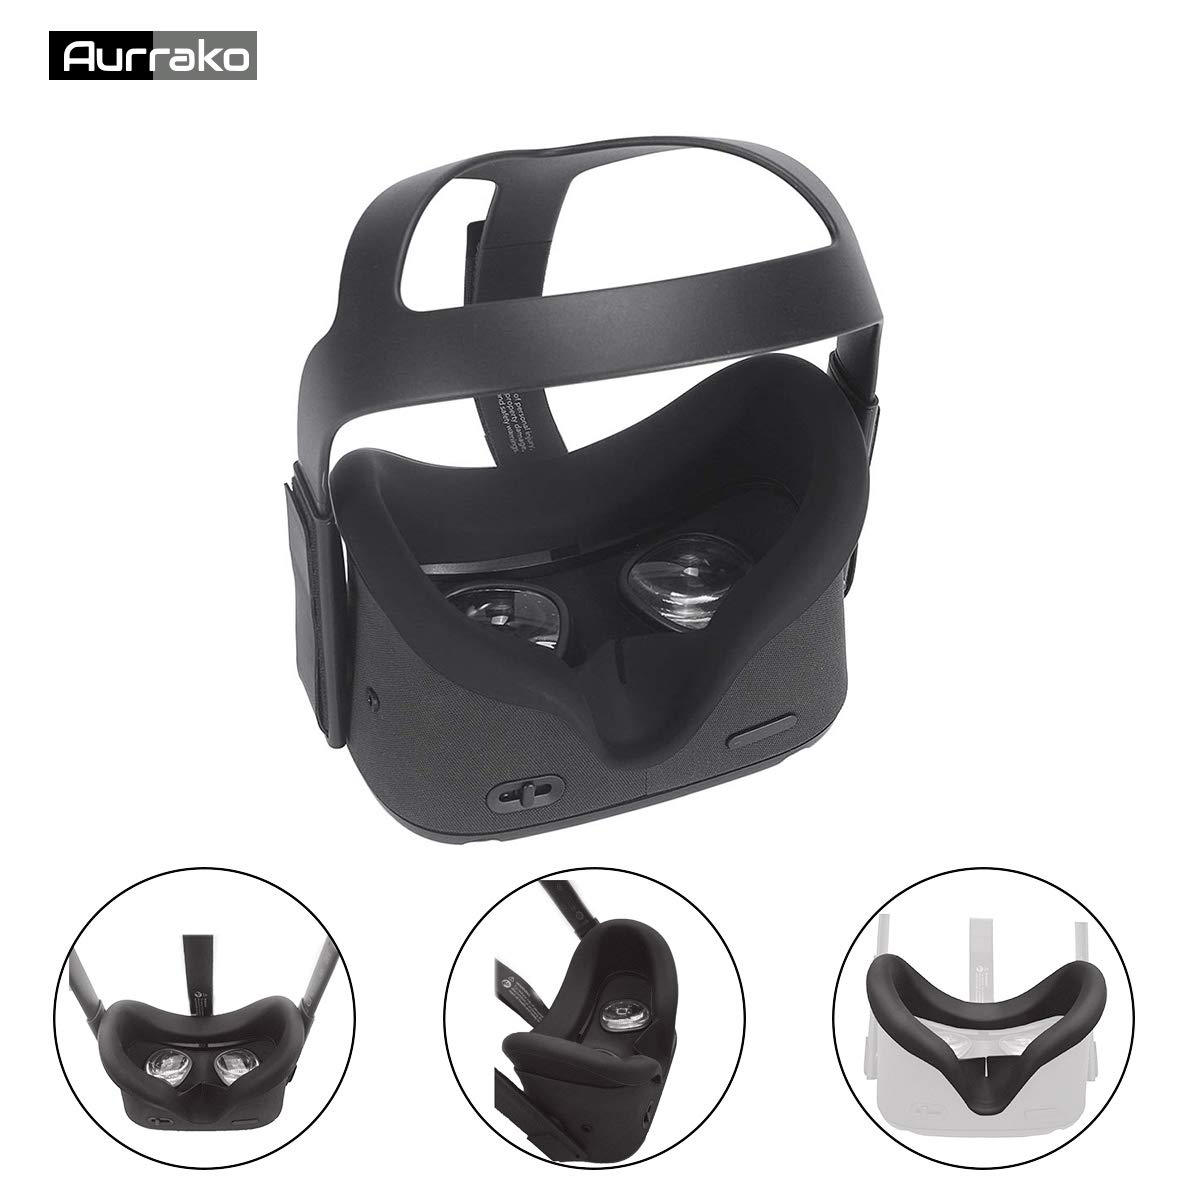 Aurrako Vr Face Pad for Oculus Quest VR Headset Accessories, Silicone Face Cover Mask Easy Wipe Clean Sweatproof Light…